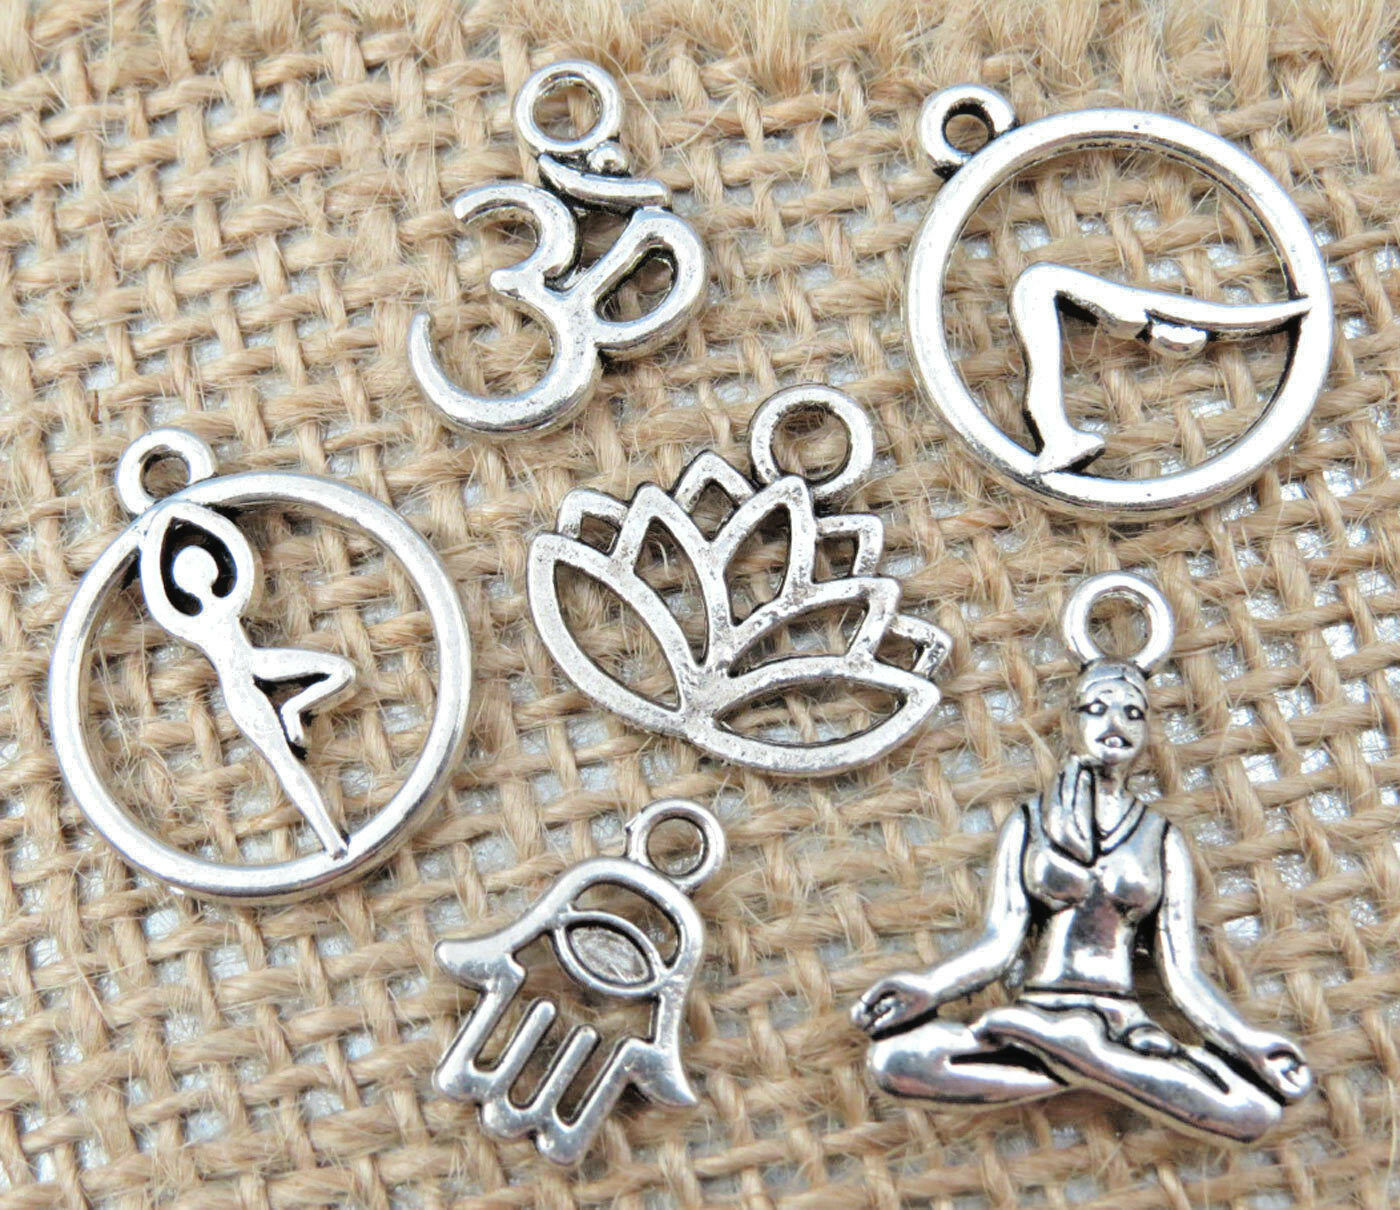 6 yoga tibetan silver charms collection set lot om lotus flower tree picture 1 of 4 izmirmasajfo